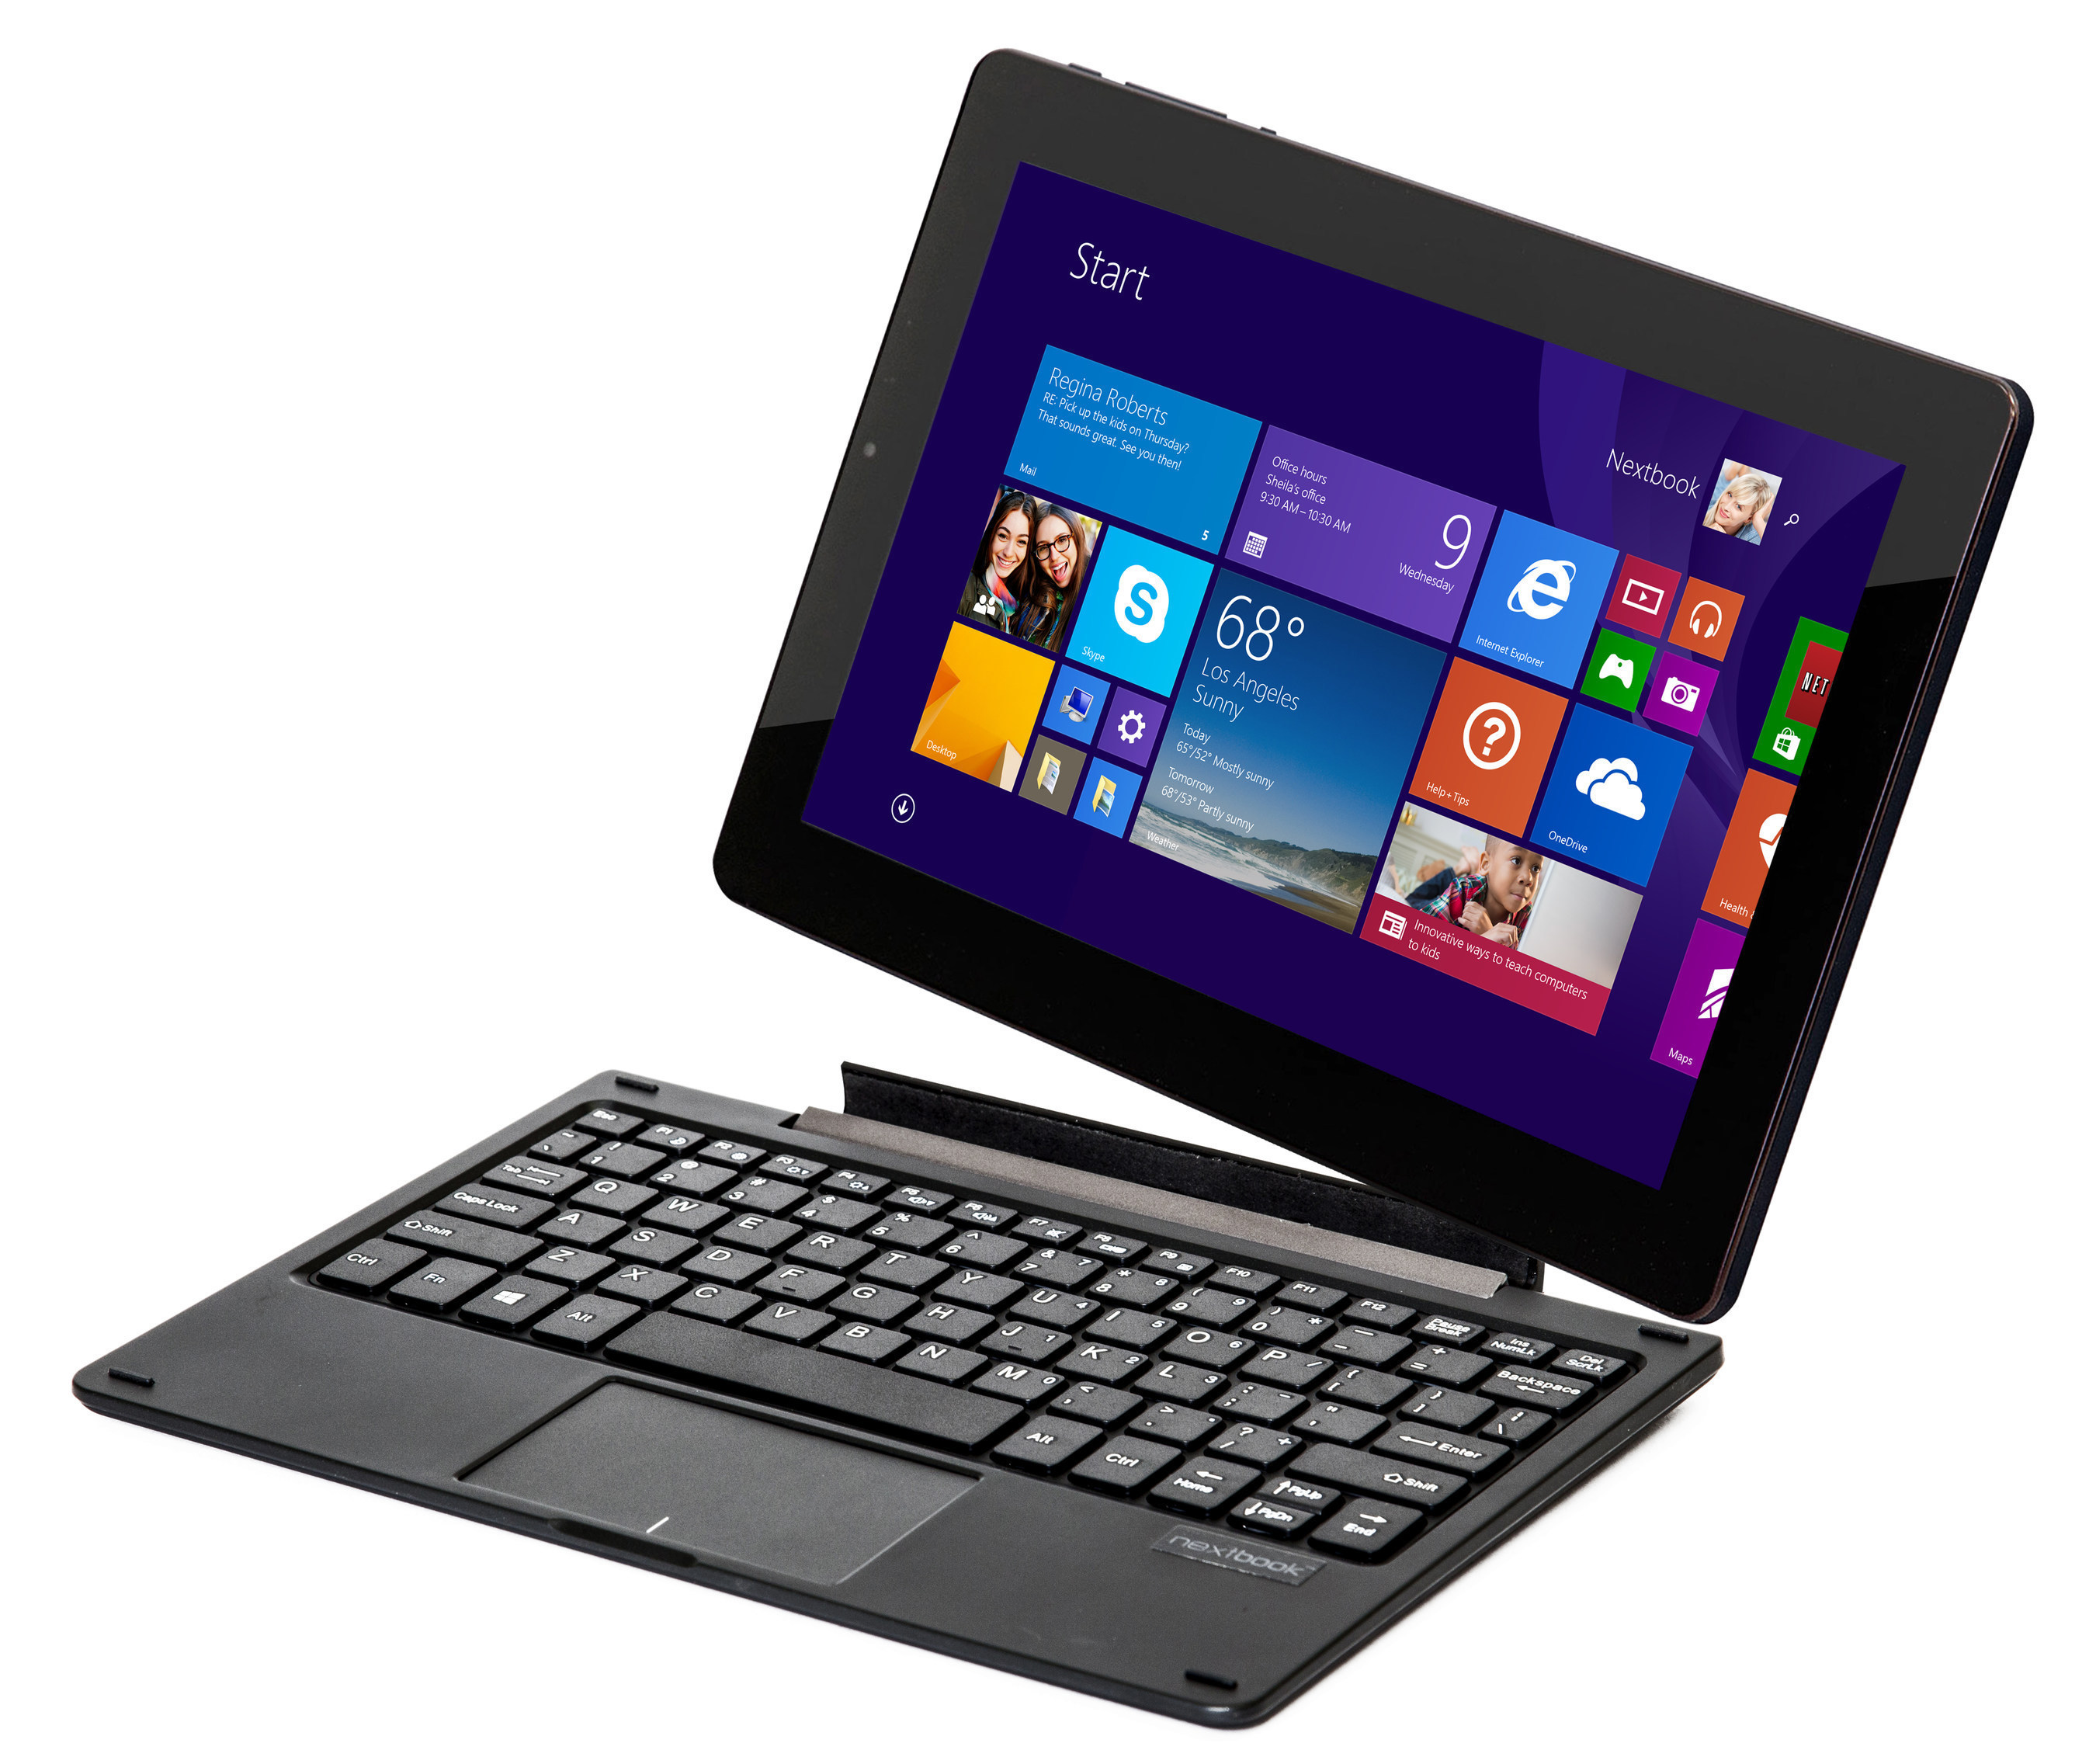 Nextbook is expanding its line of 2-in-1 tablets with Windows 8.1, Quad-Core Intel Atom processors, detachable ...